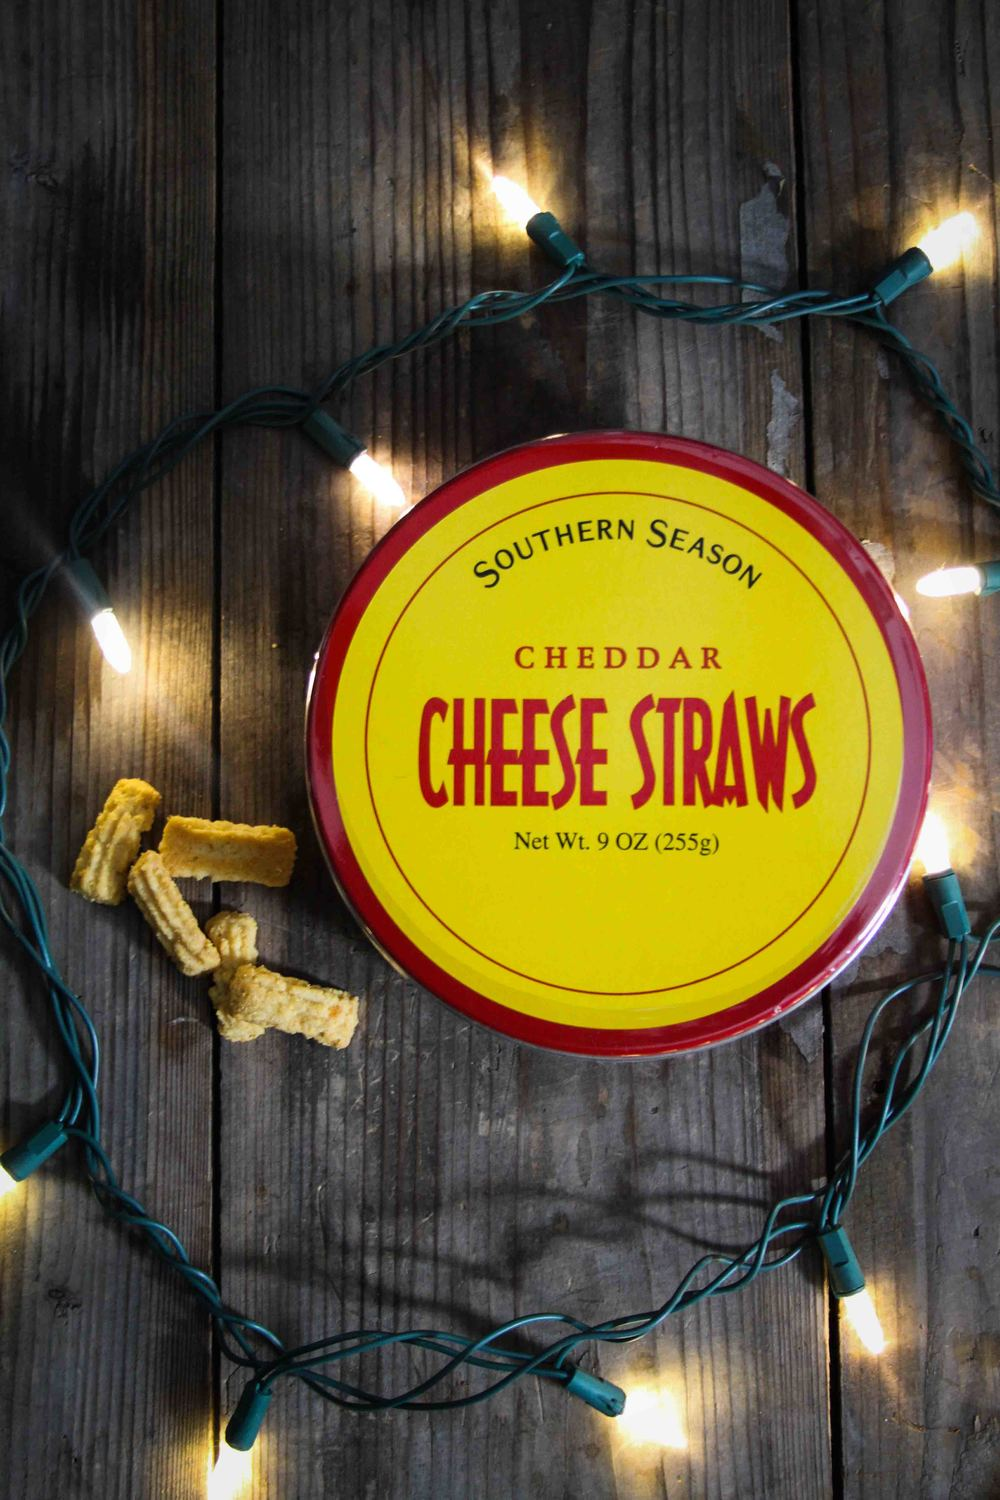 Southern Season, Cheddar Cheese Straws ($12.95) - I was sold on this ultra-cheesy-super-addictive snack the moment I sampled it! I immediateIy bought a few tins as gifts... and a few for myself. Sold at Southern Season.